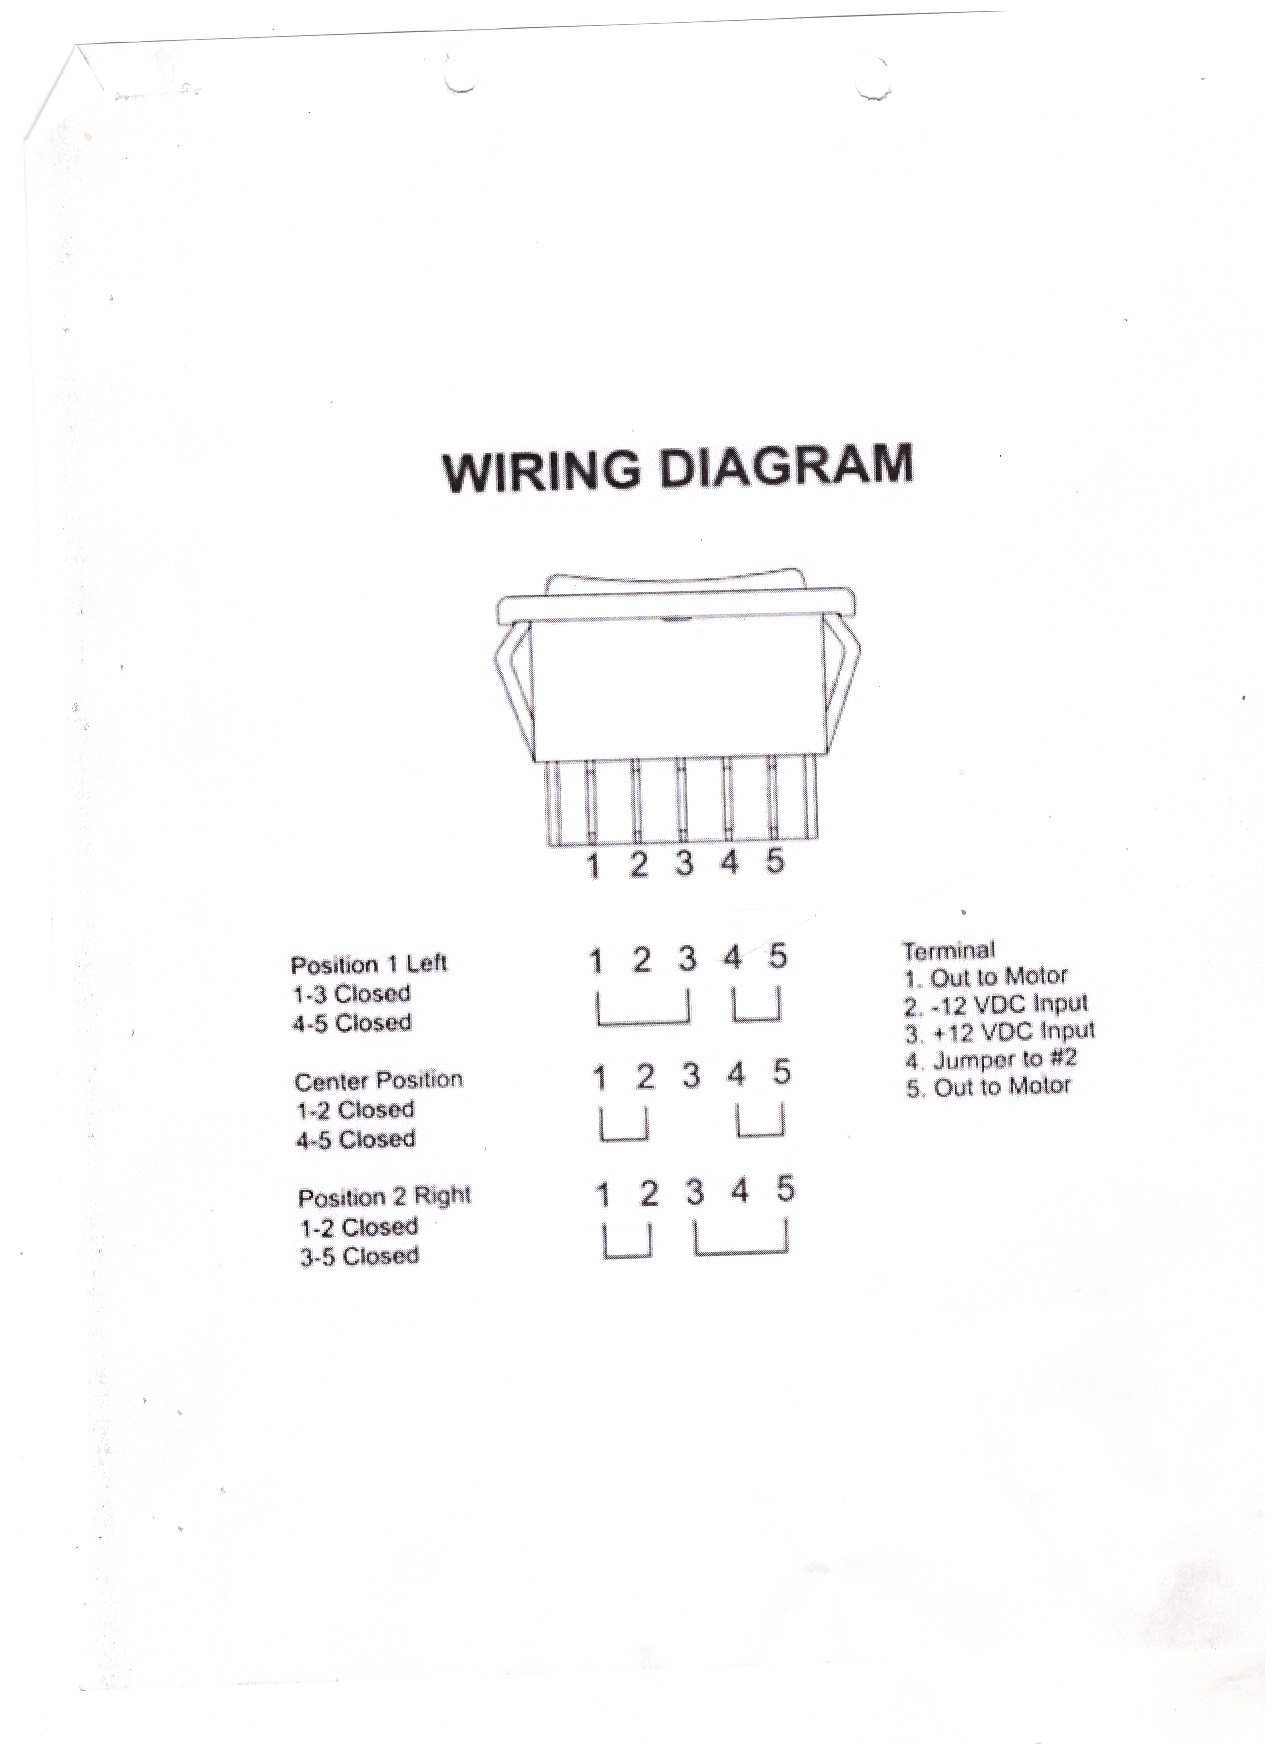 electric window wiring diagram wiring diagram and schematic design power window wiring diagram eljac